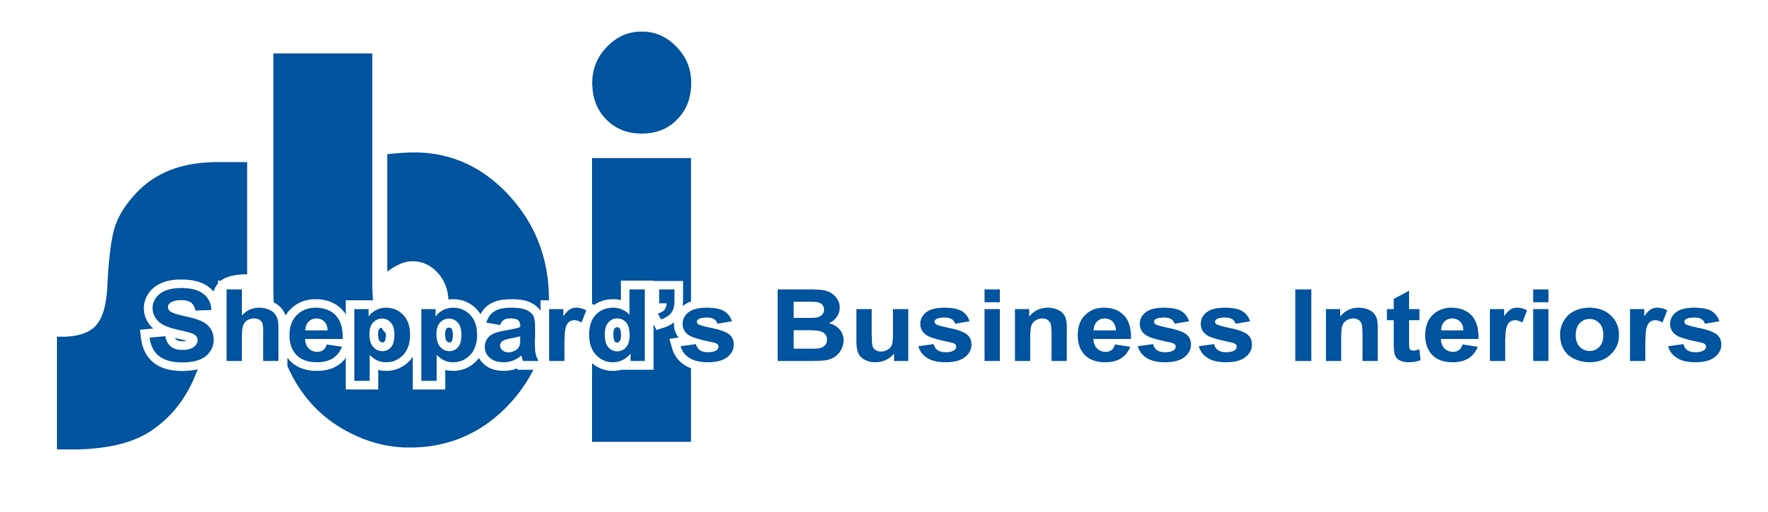 Sheppard's Business Interiors logo